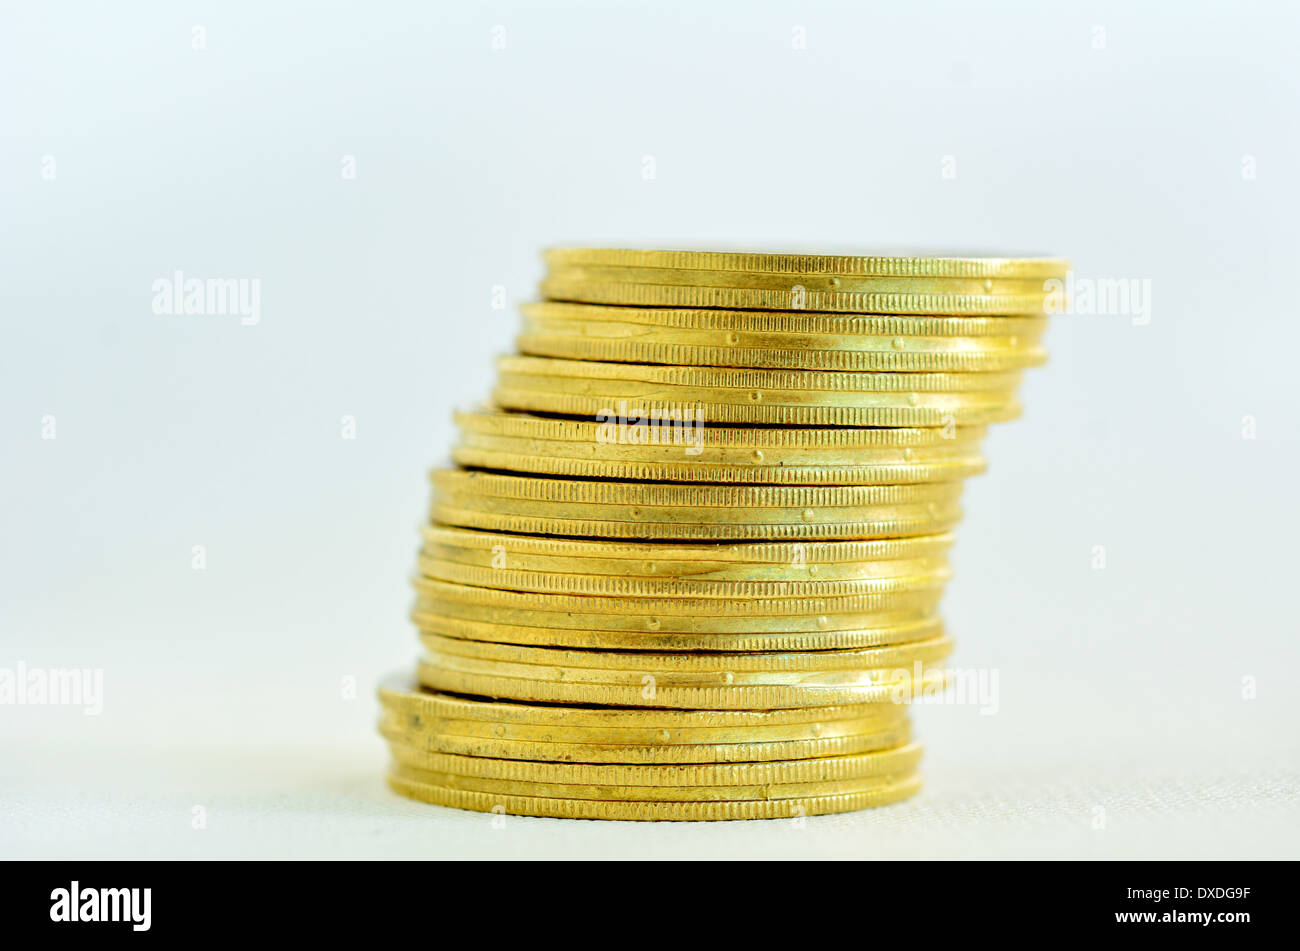 One Golden gold coins stack on a lean, isolated on white background. Concept photo of bank, money, banking, finance, economy. - Stock Image